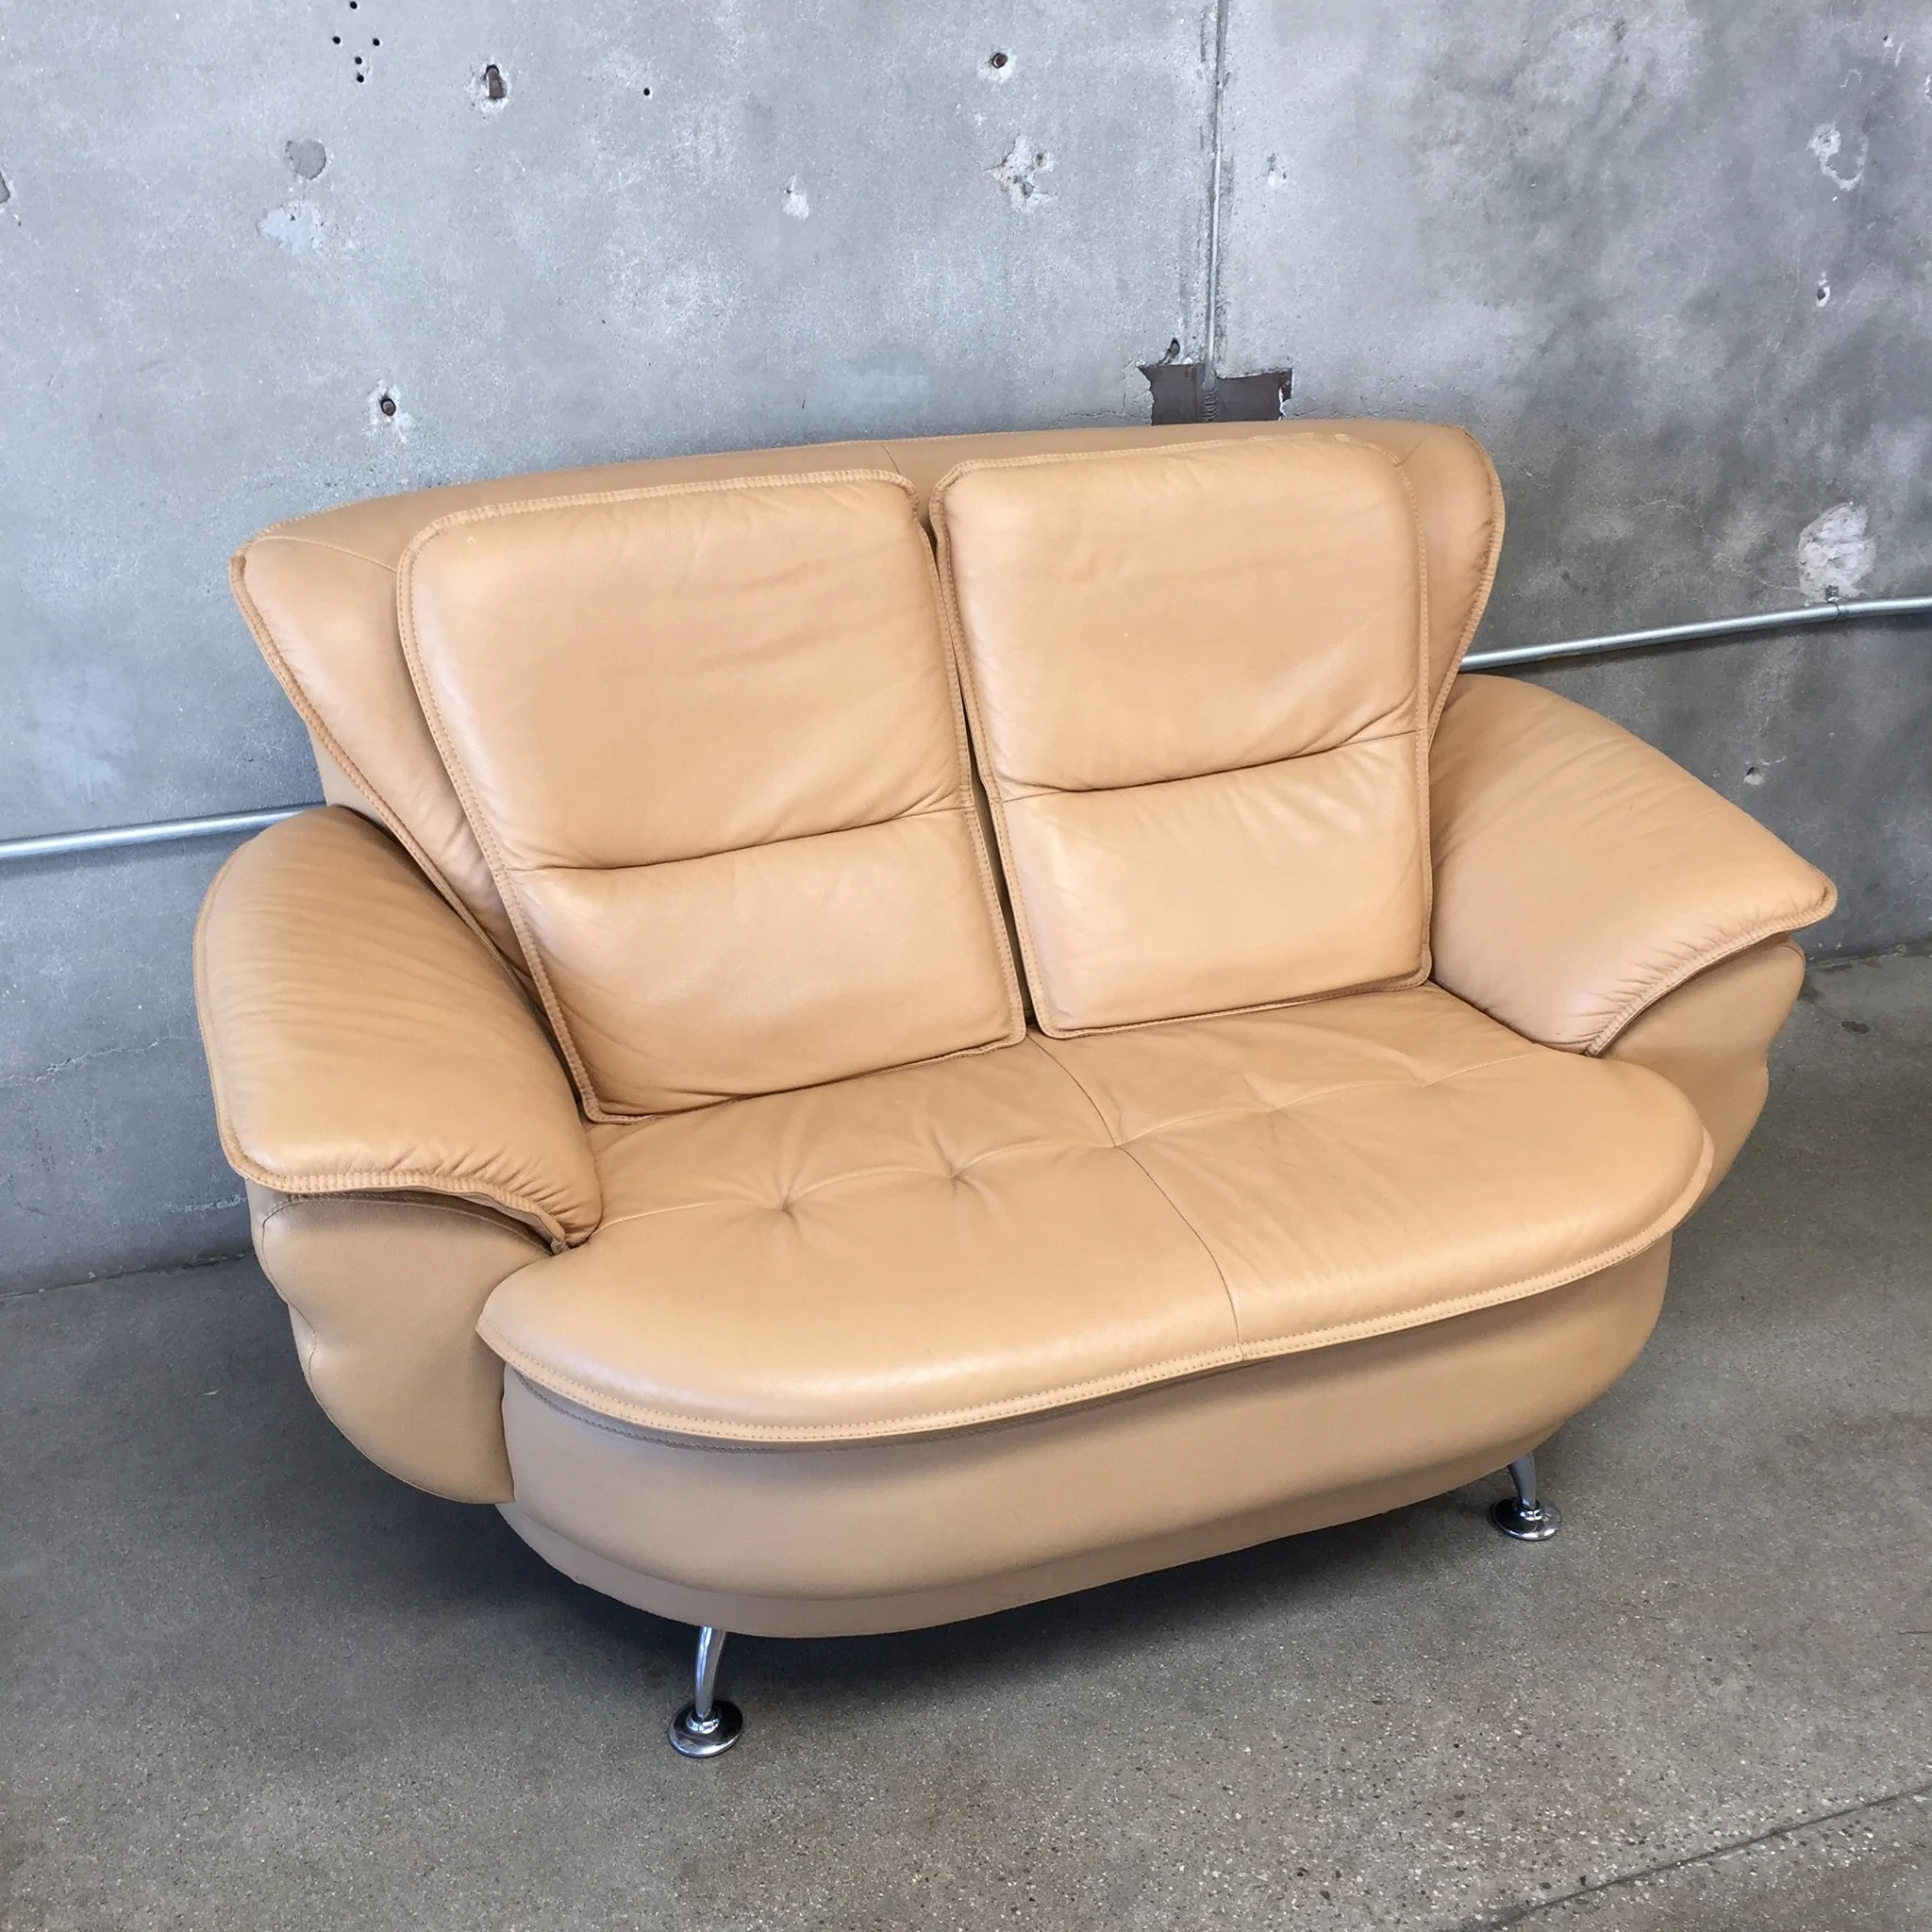 swivel chair sofa set ebay poang covers mid century saddle color loveseat and